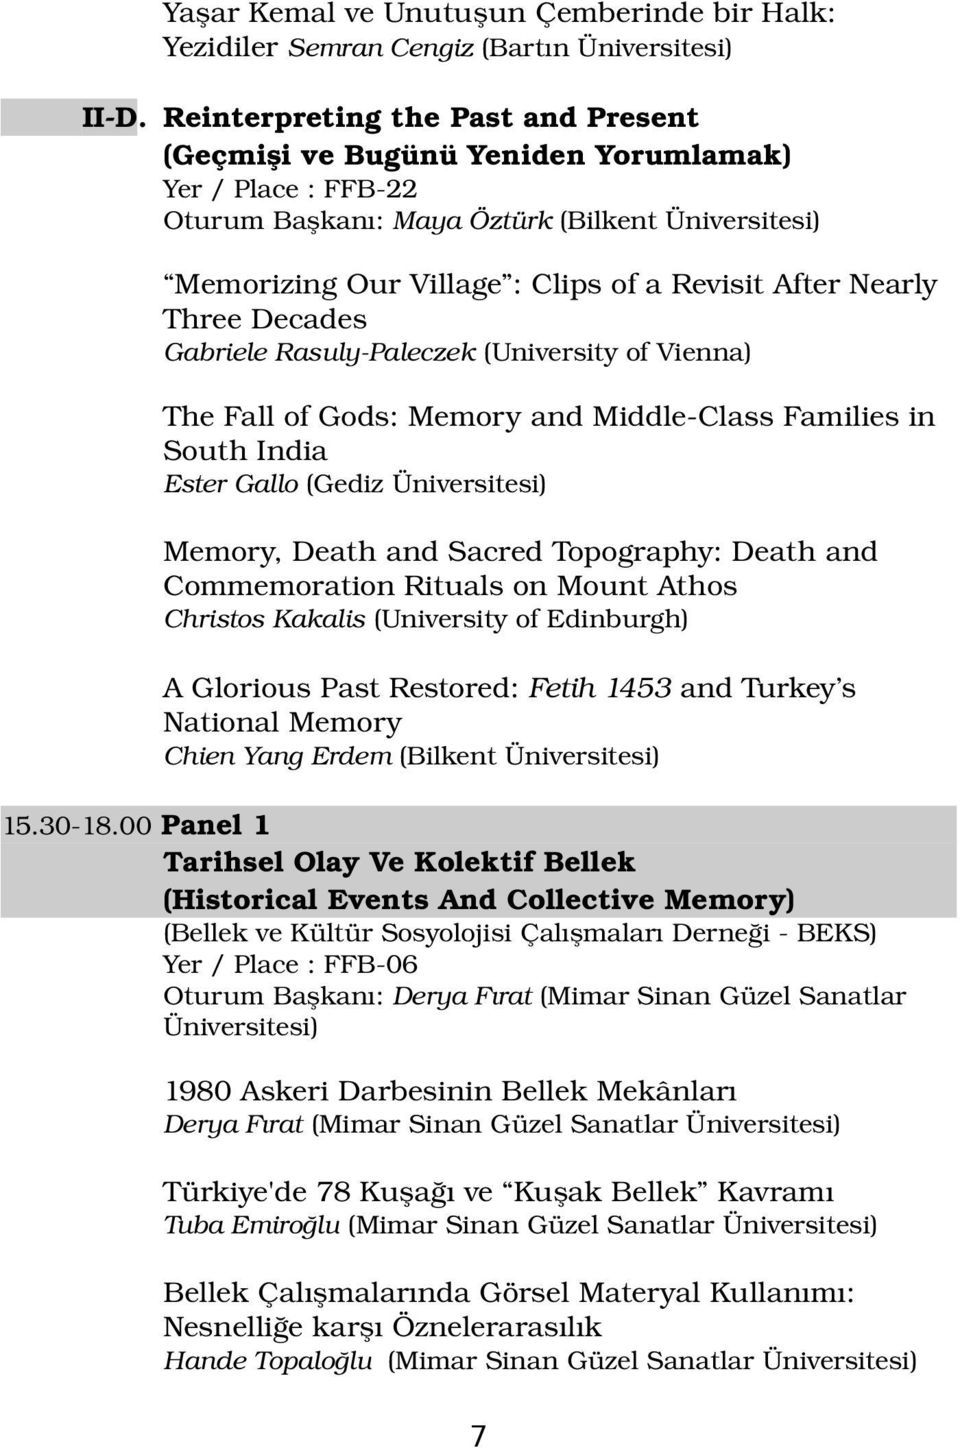 Nearly Three Decades Gabriele Rasuly Paleczek (University of Vienna) The Fall of Gods: Memory and Middle Class Families in South India Ester Gallo (Gediz Üniversitesi) Memory, Death and Sacred